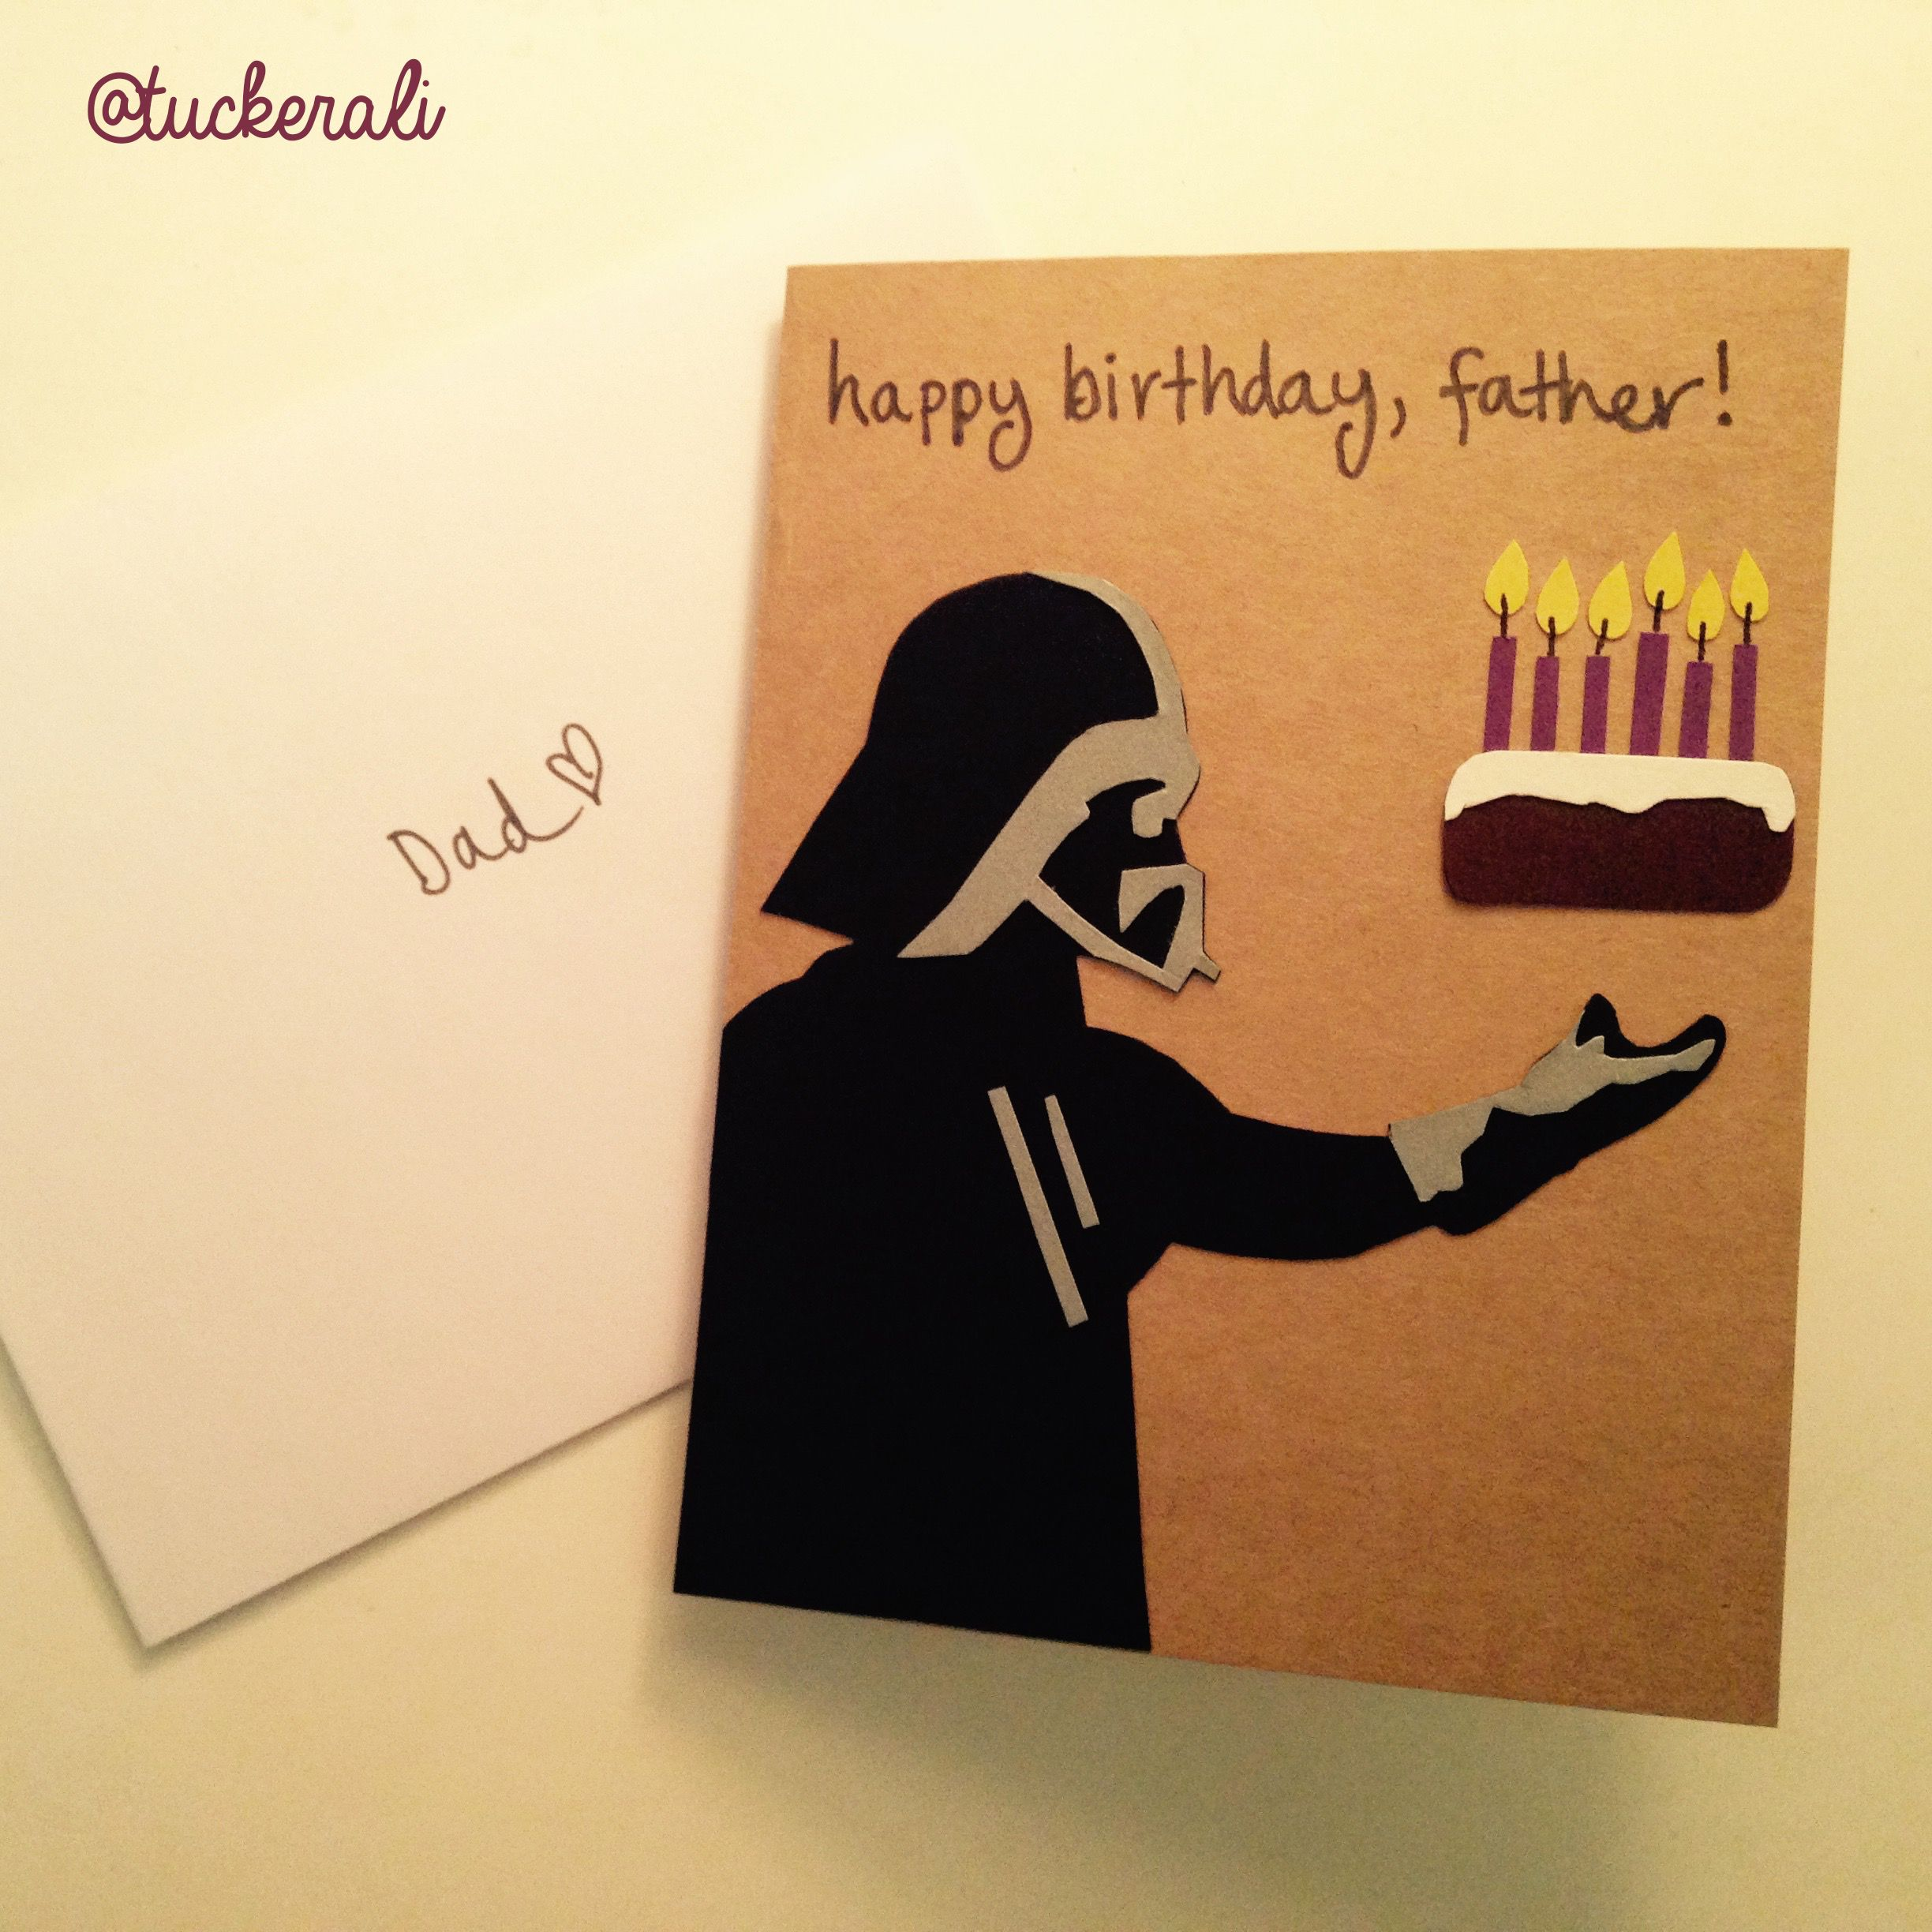 Today in Ali does crafts Darth Vader birthday card for dad Karten DiyKarten BastelnGeschenk ElternPapa GeburtstagStar Wars